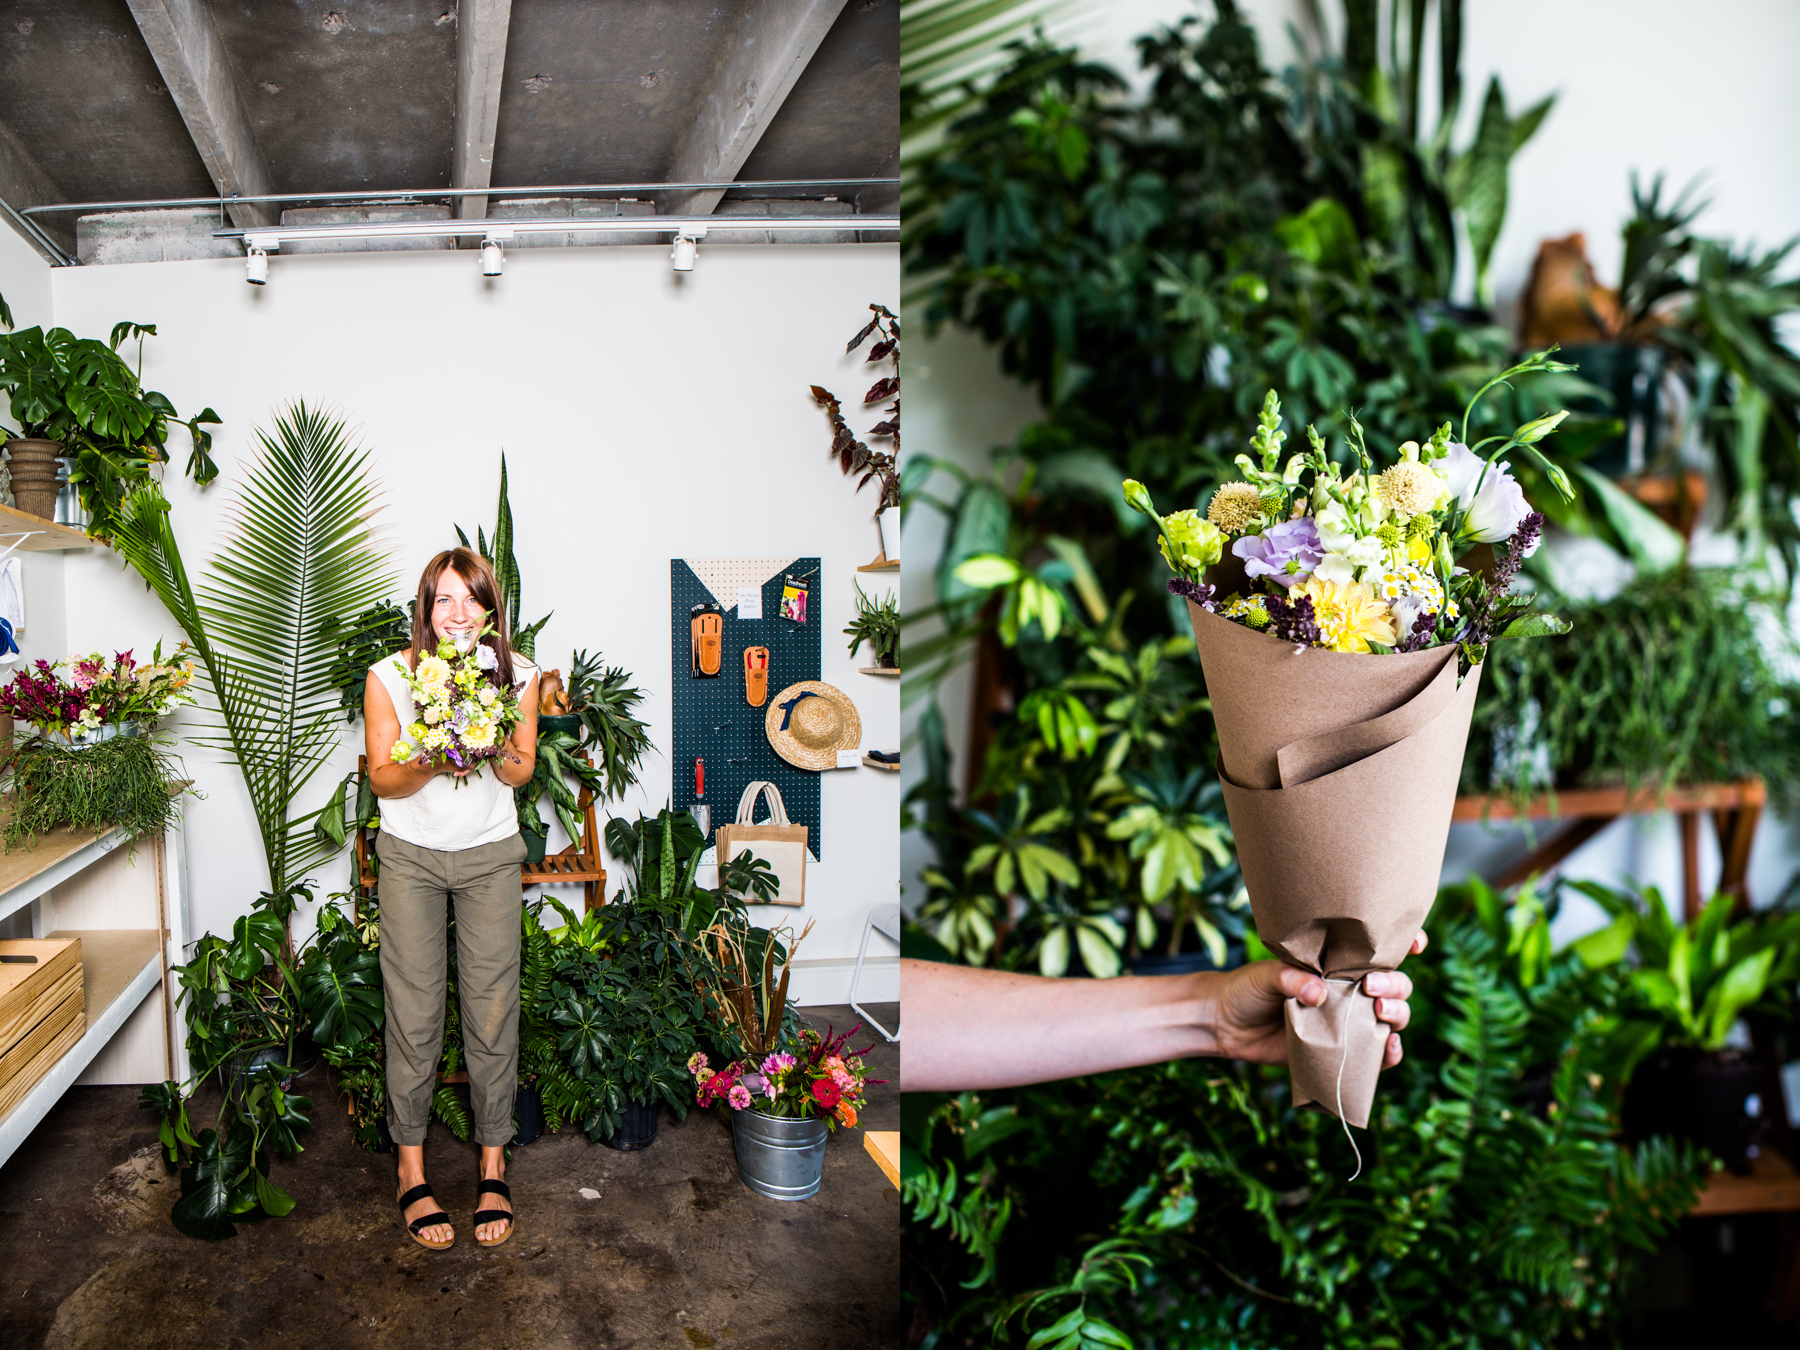 Christie Craig runs The Farmer & The Florist out of the front of 1411, selling organic and locally sourced flowers and vegetables grown by her farmer fiancé, Will Tarlton.